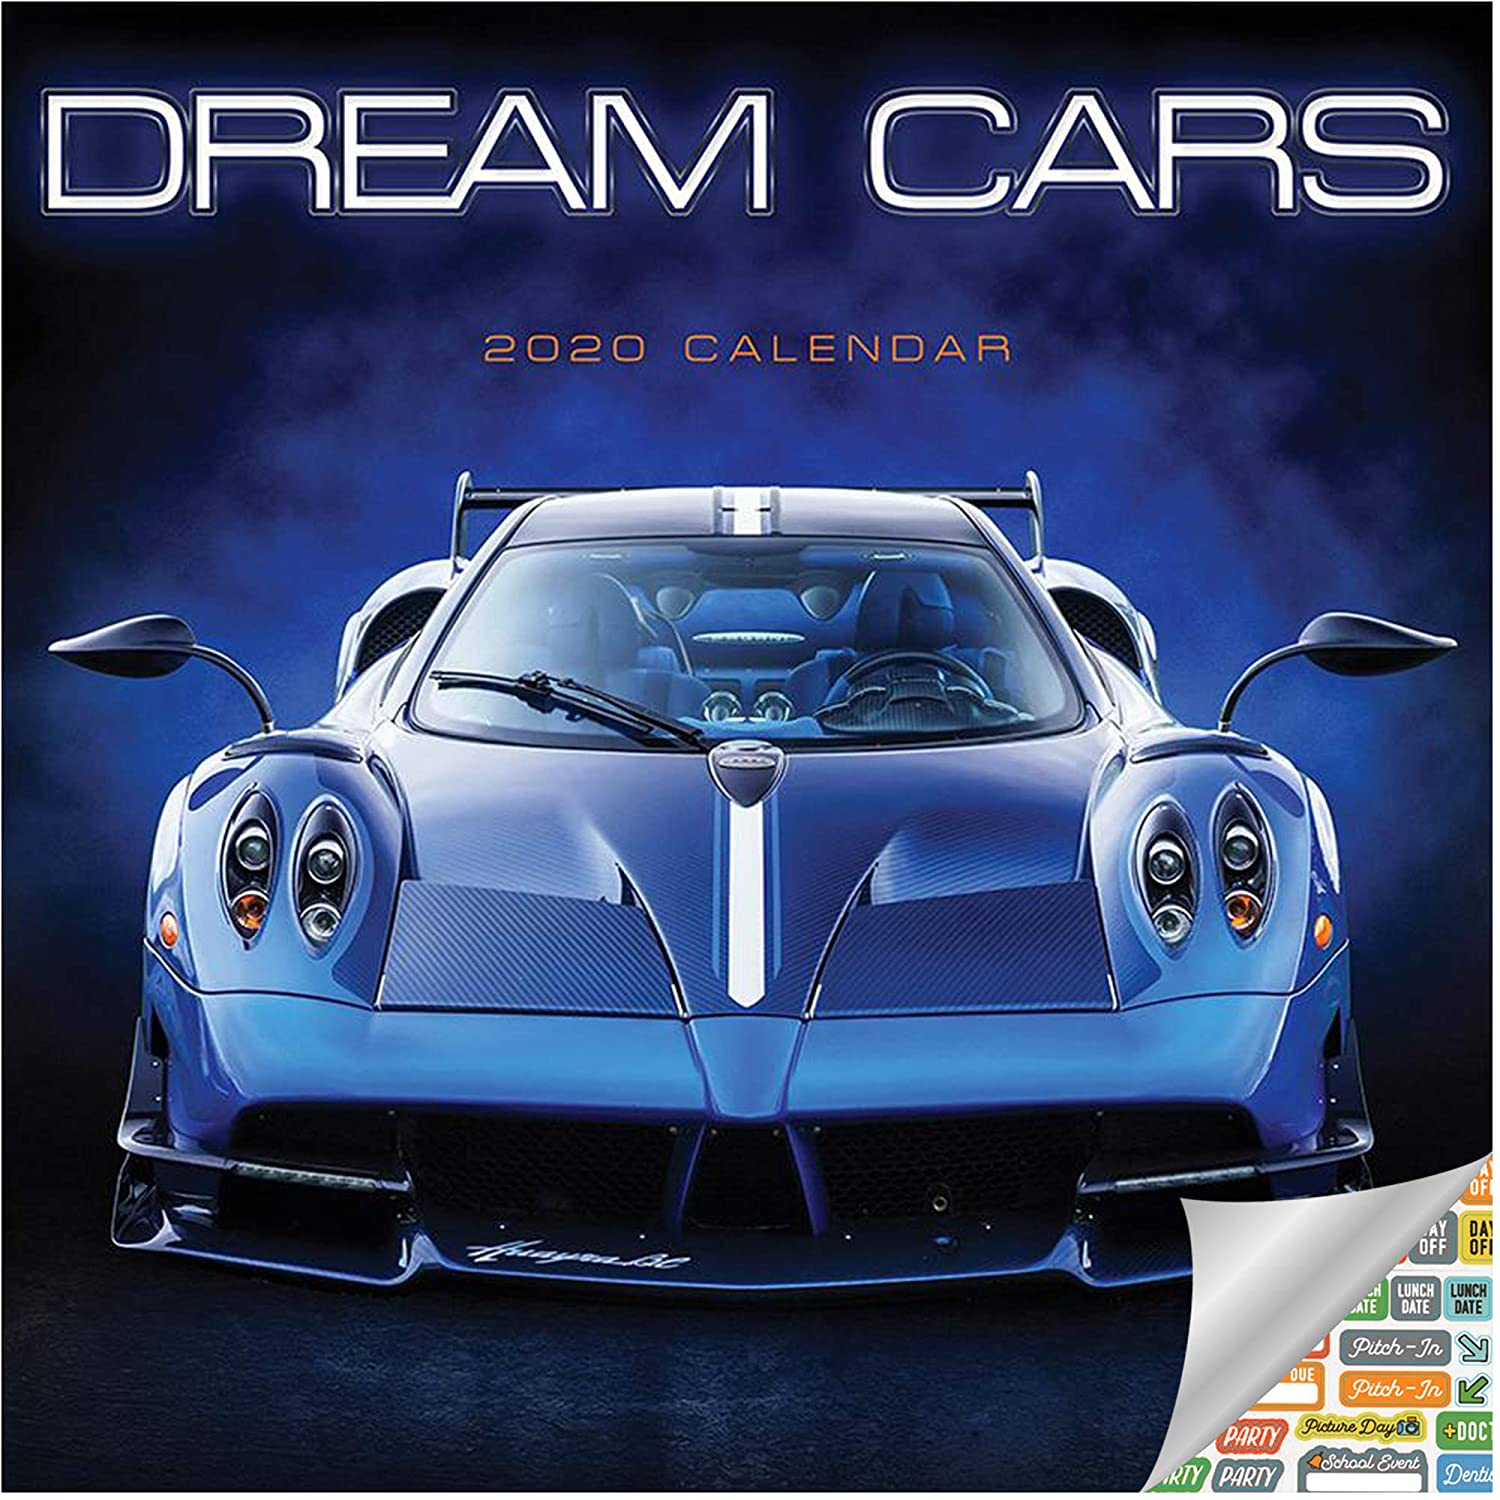 Dream Cars Calendar 2020 Set Exotic Cars Gifts, Office Supplies Deluxe 2020 Supercars Wall Calendar with Over 100 Calendar Stickers